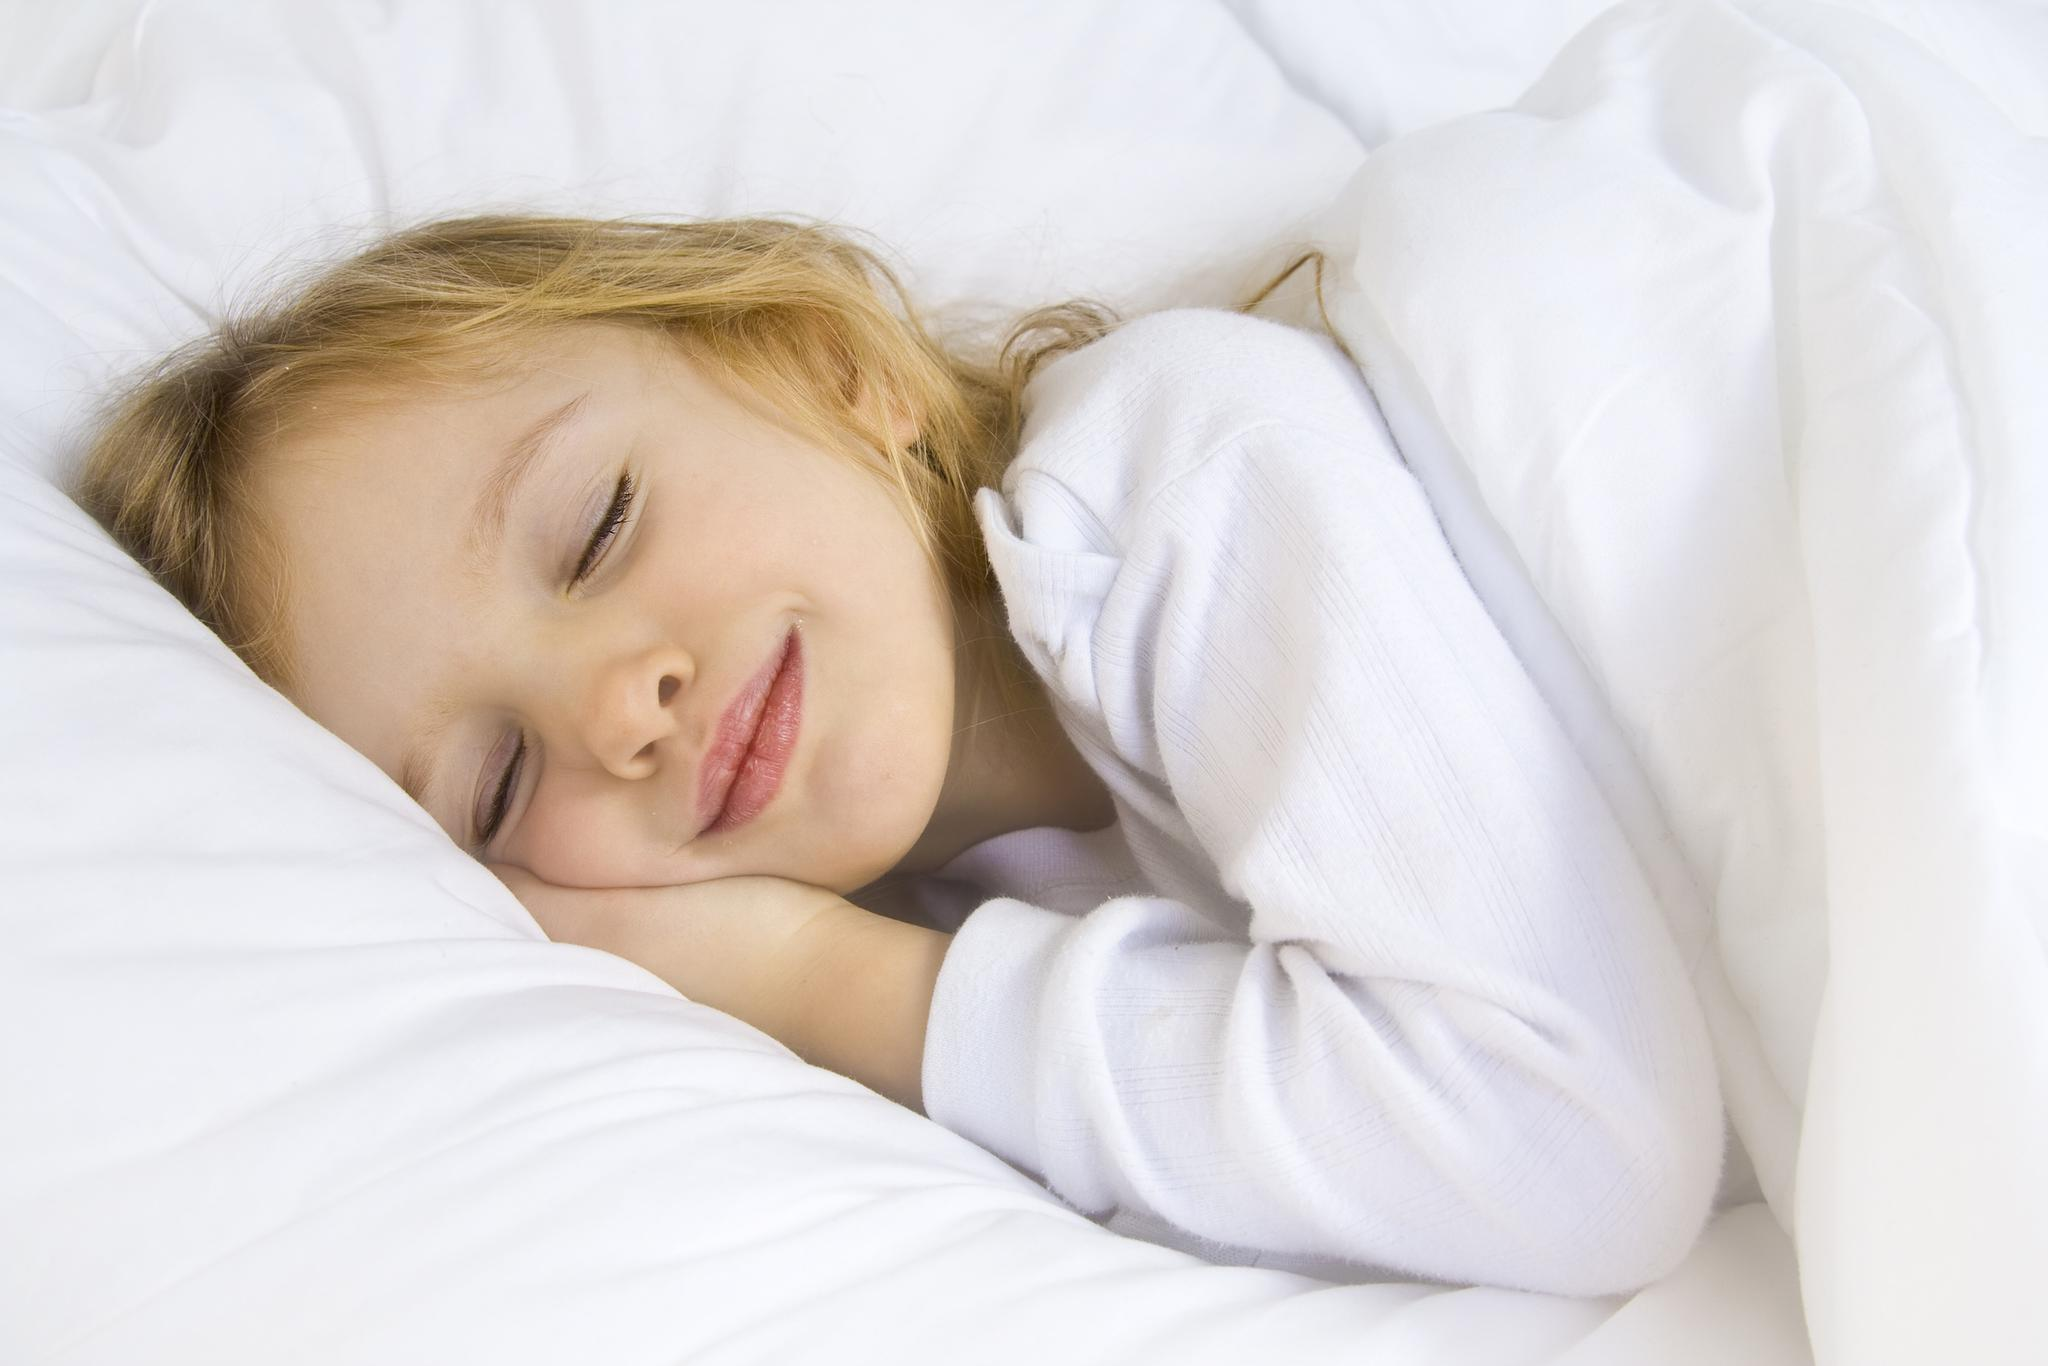 Children S Sleep Guide Mattresshelp Org